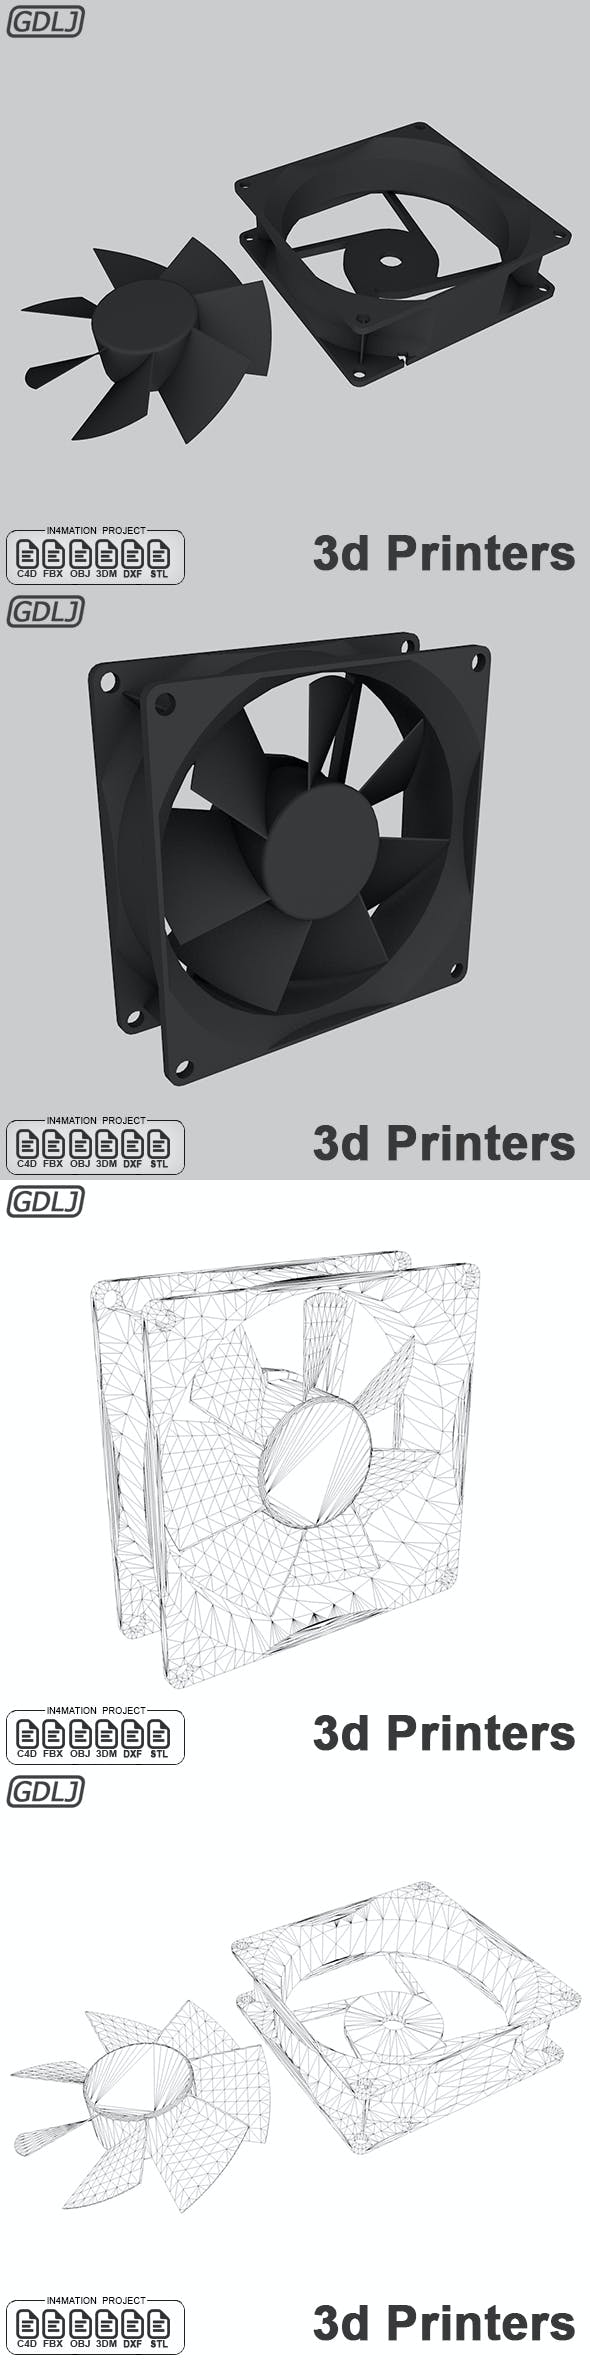 Fan PC with STL 3d printer - 3DOcean Item for Sale